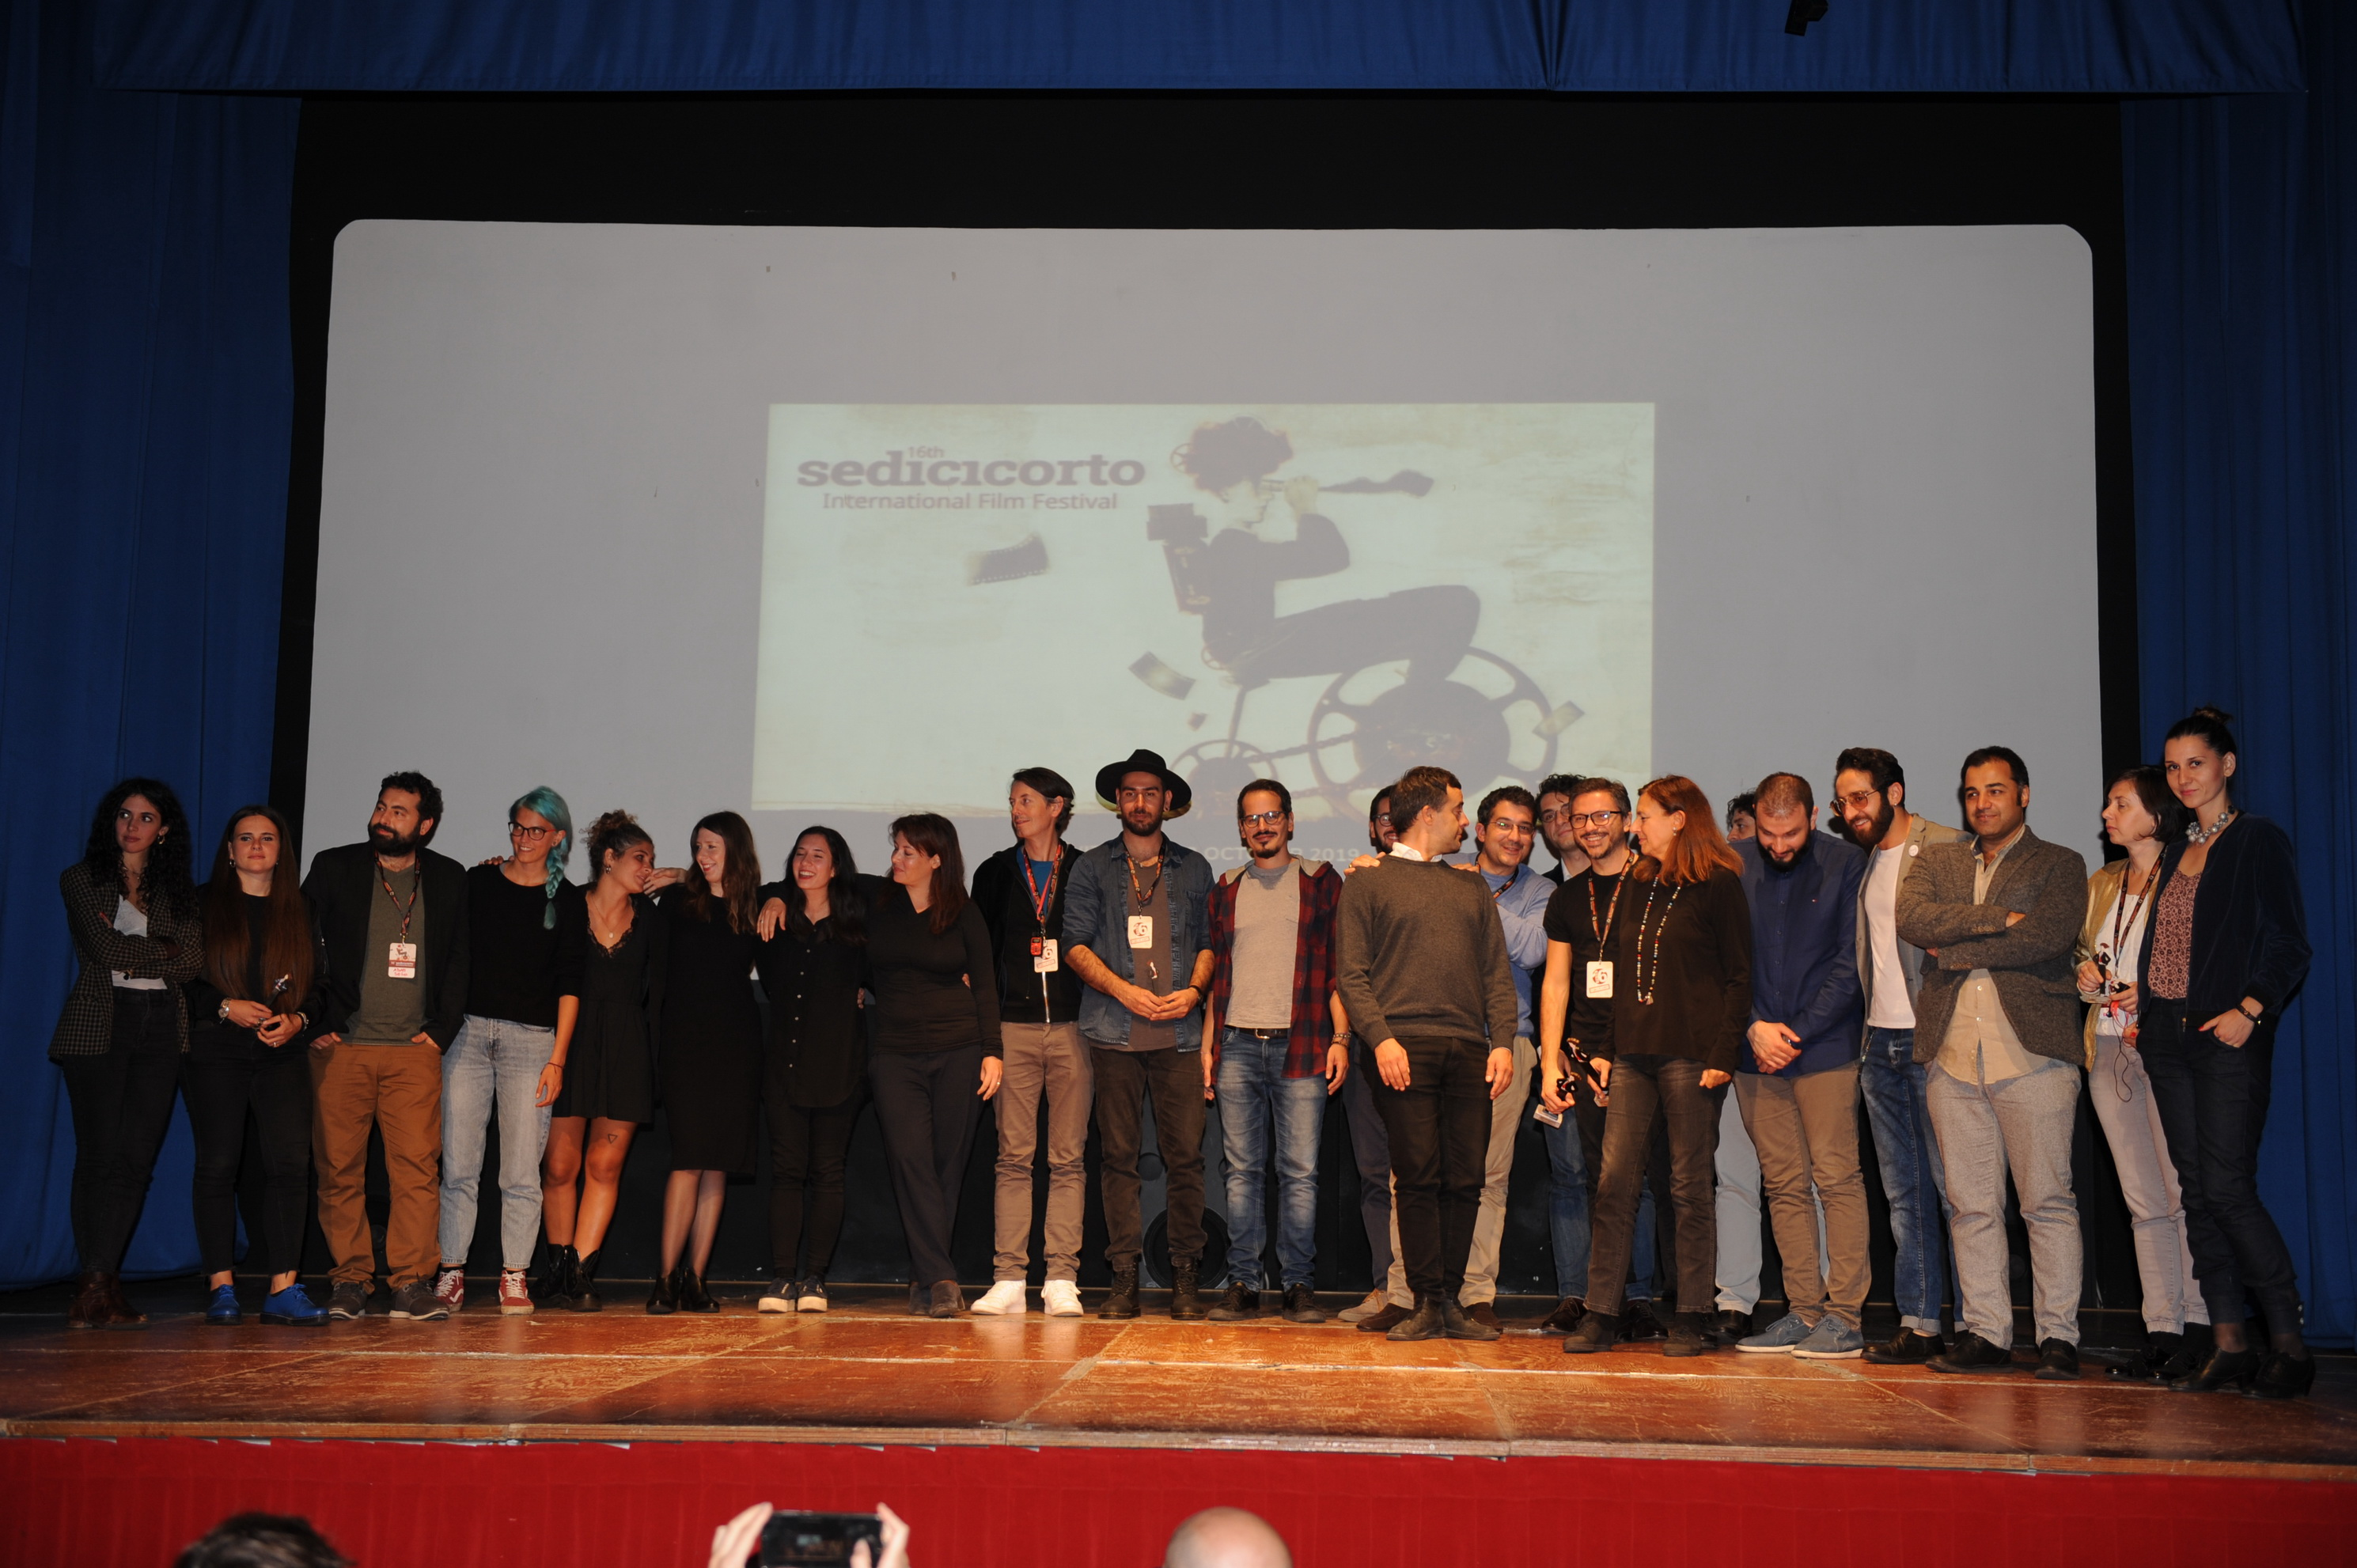 List of prizewinners of 16th Sedicicorto International Film Festival Forlì